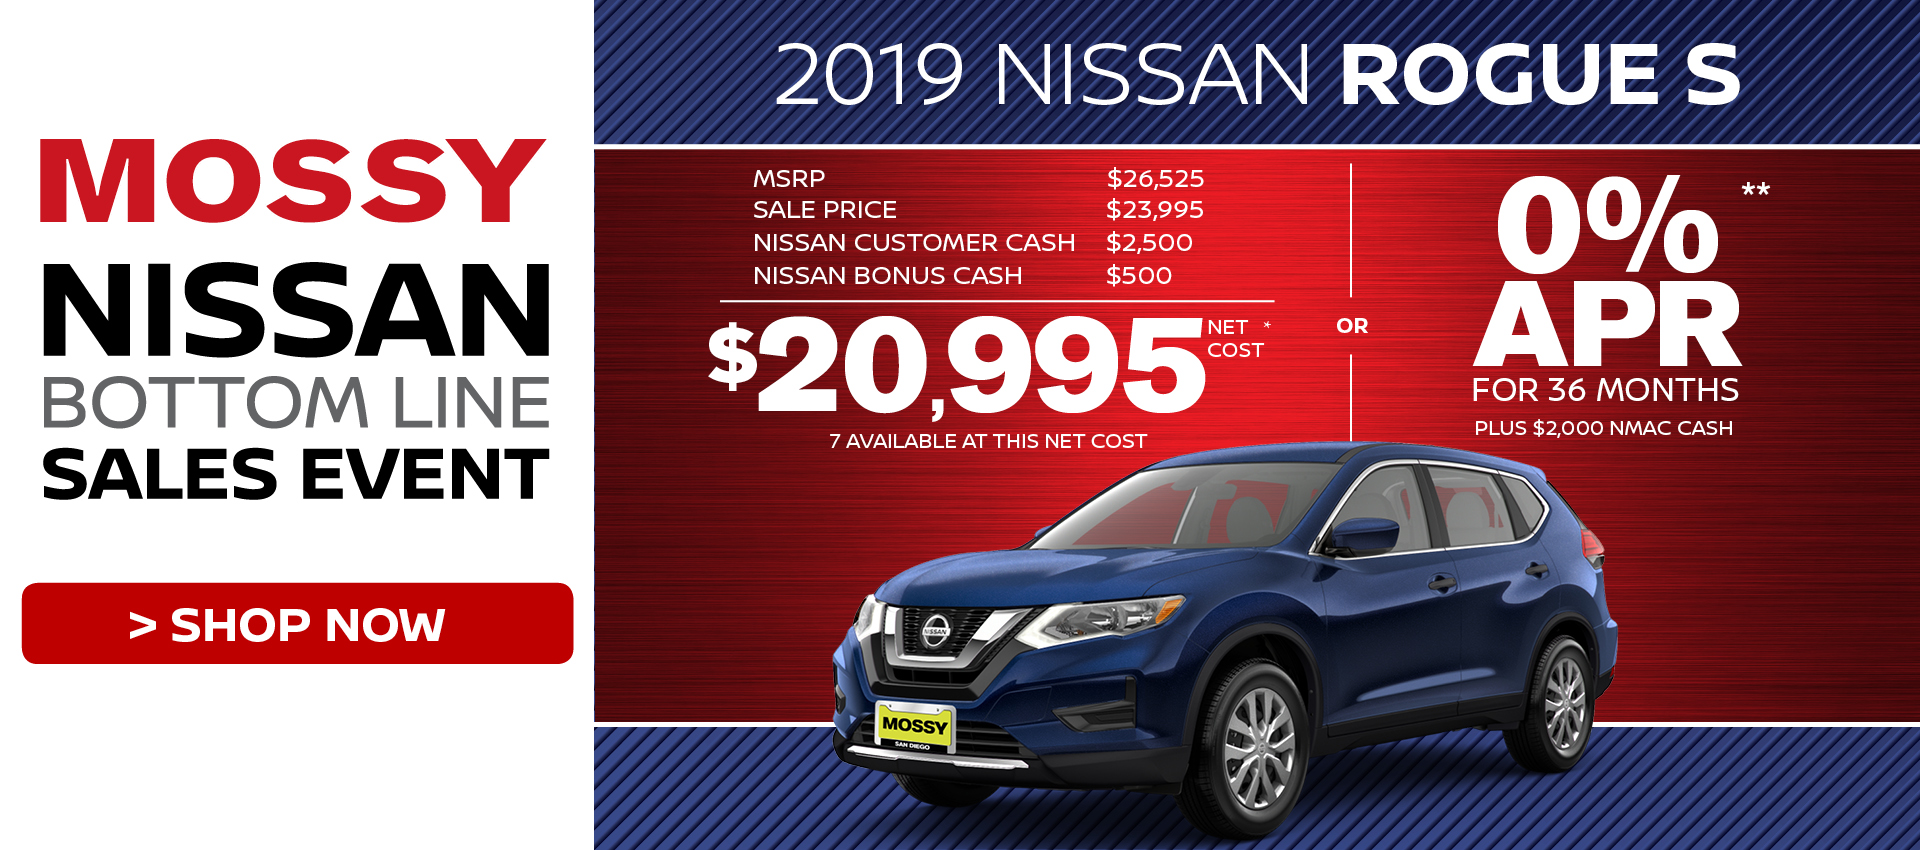 Mossy Nissan - Nissan Rogue S $20,995 Purchase HP